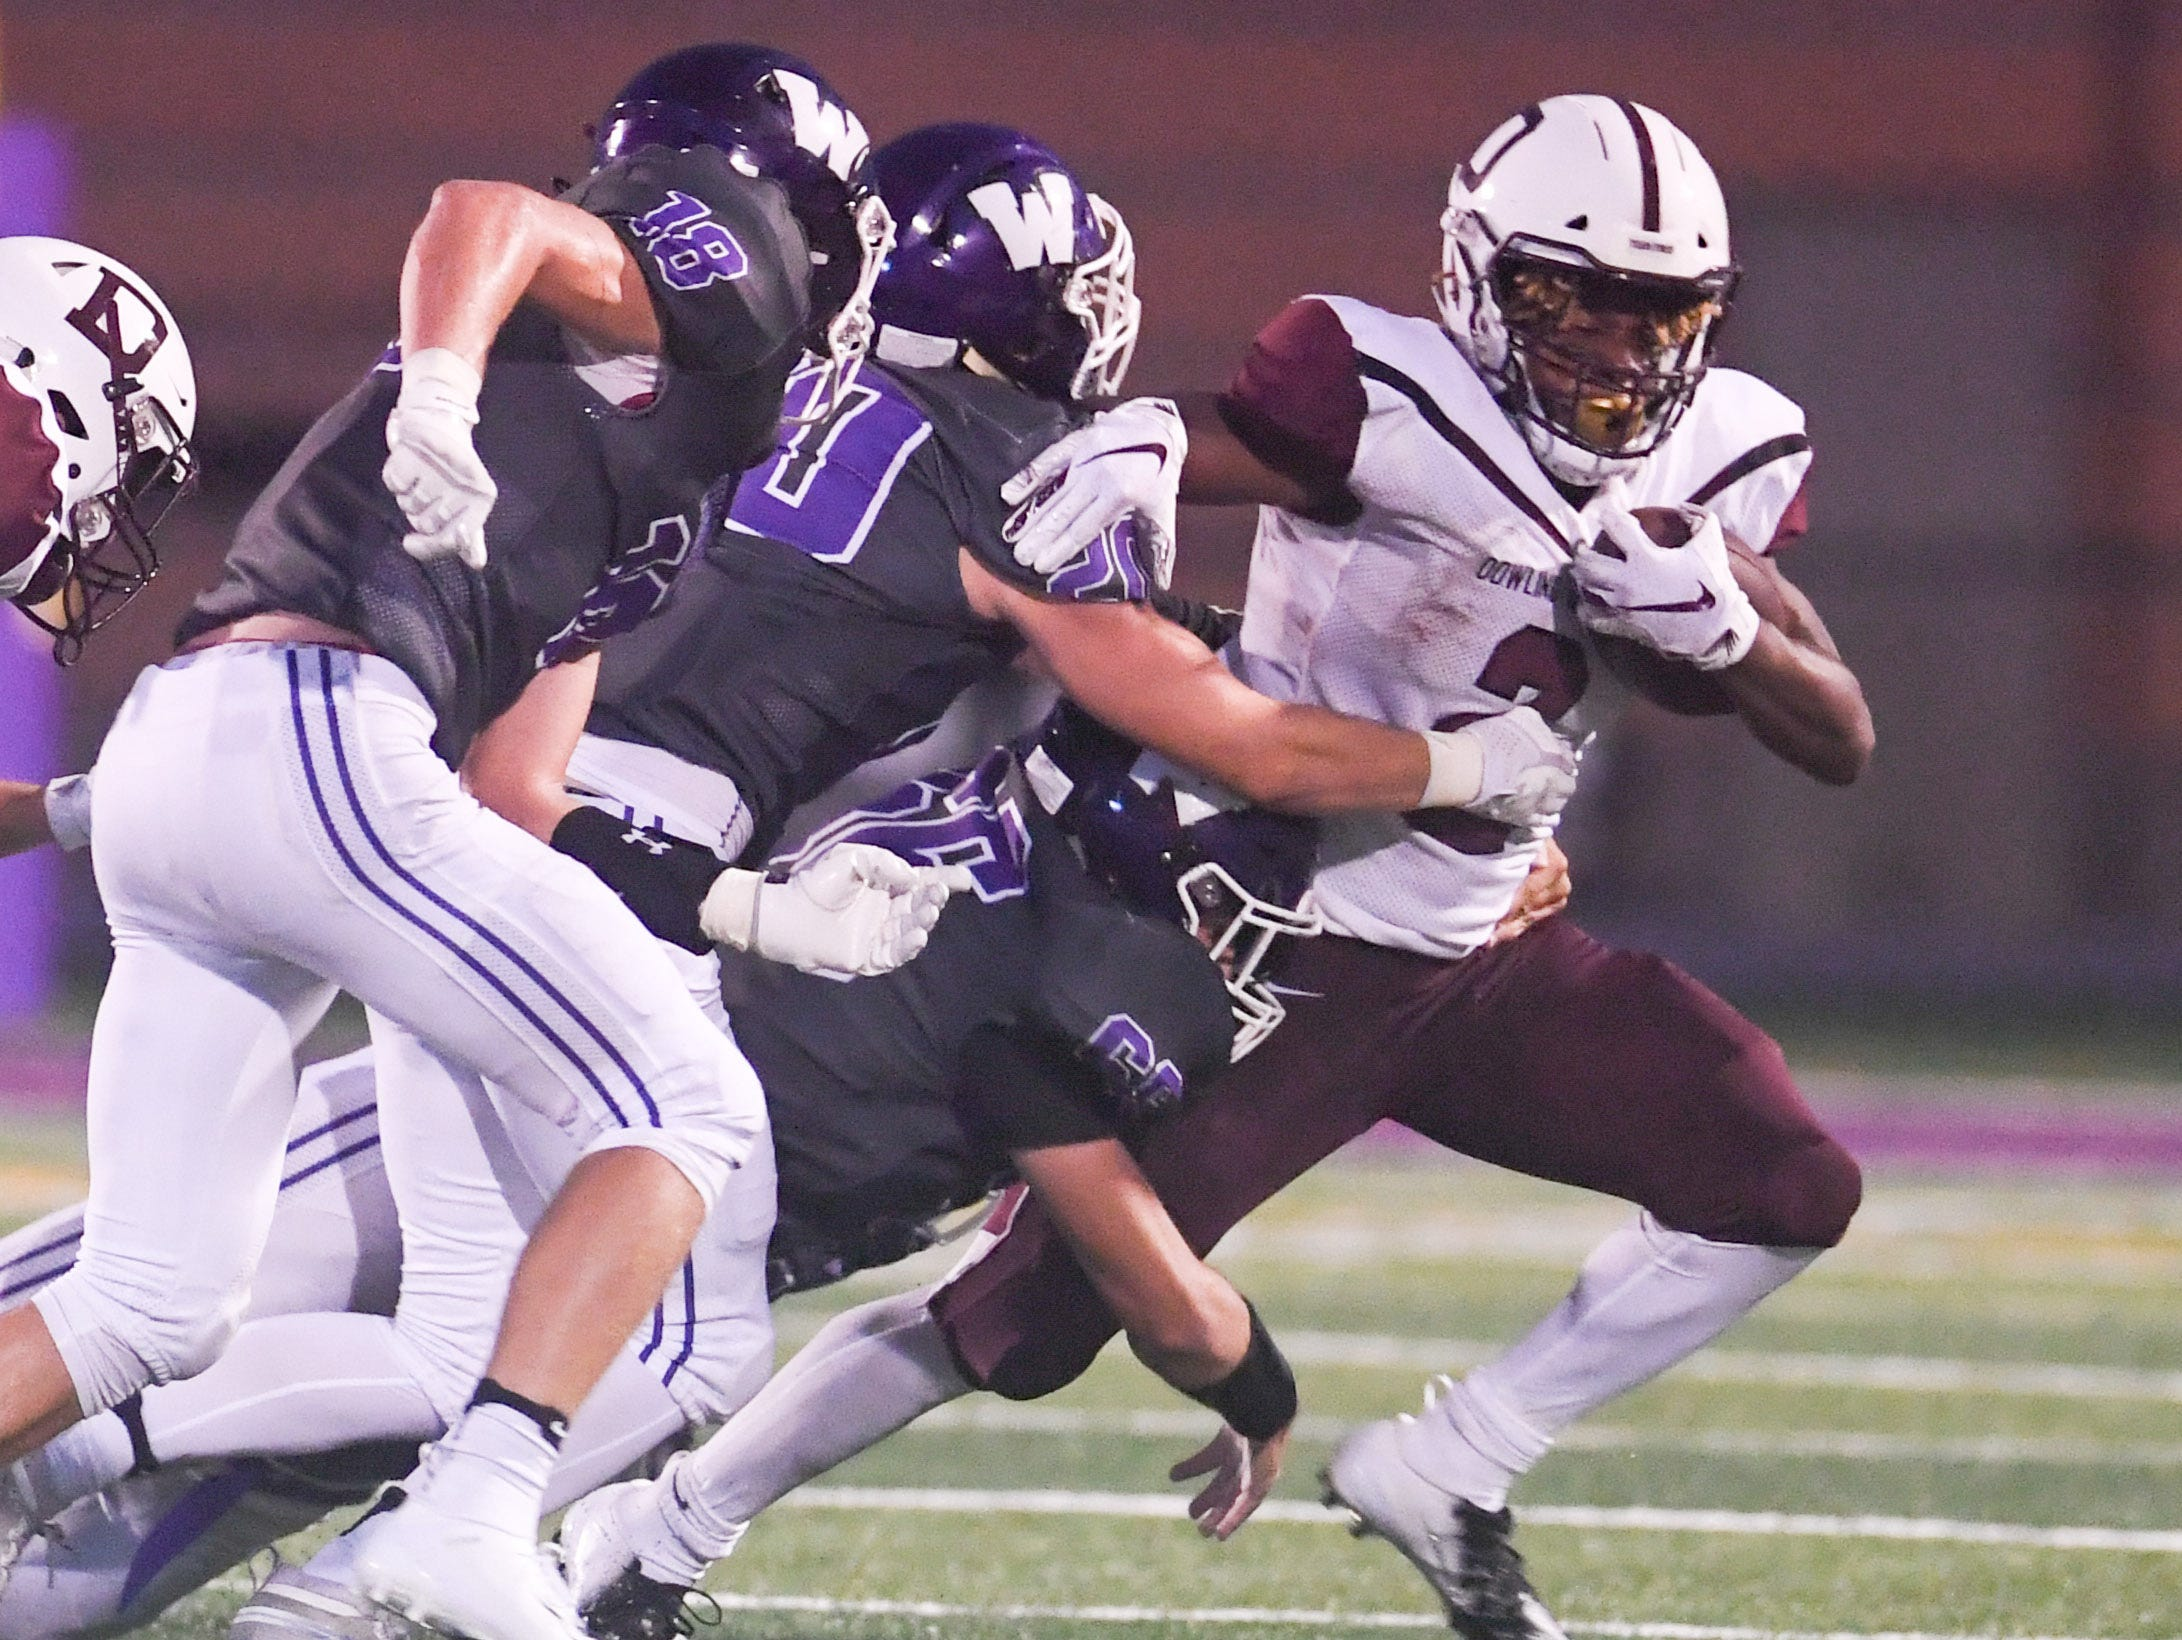 Dowling's Jayson Murray (2) scrambles away from a mob of Waukee tacklers on Friday, August 24, 2018 during a football game between the Waukee Warriors and the Dowling Catholic Maroons at Waukee High School.